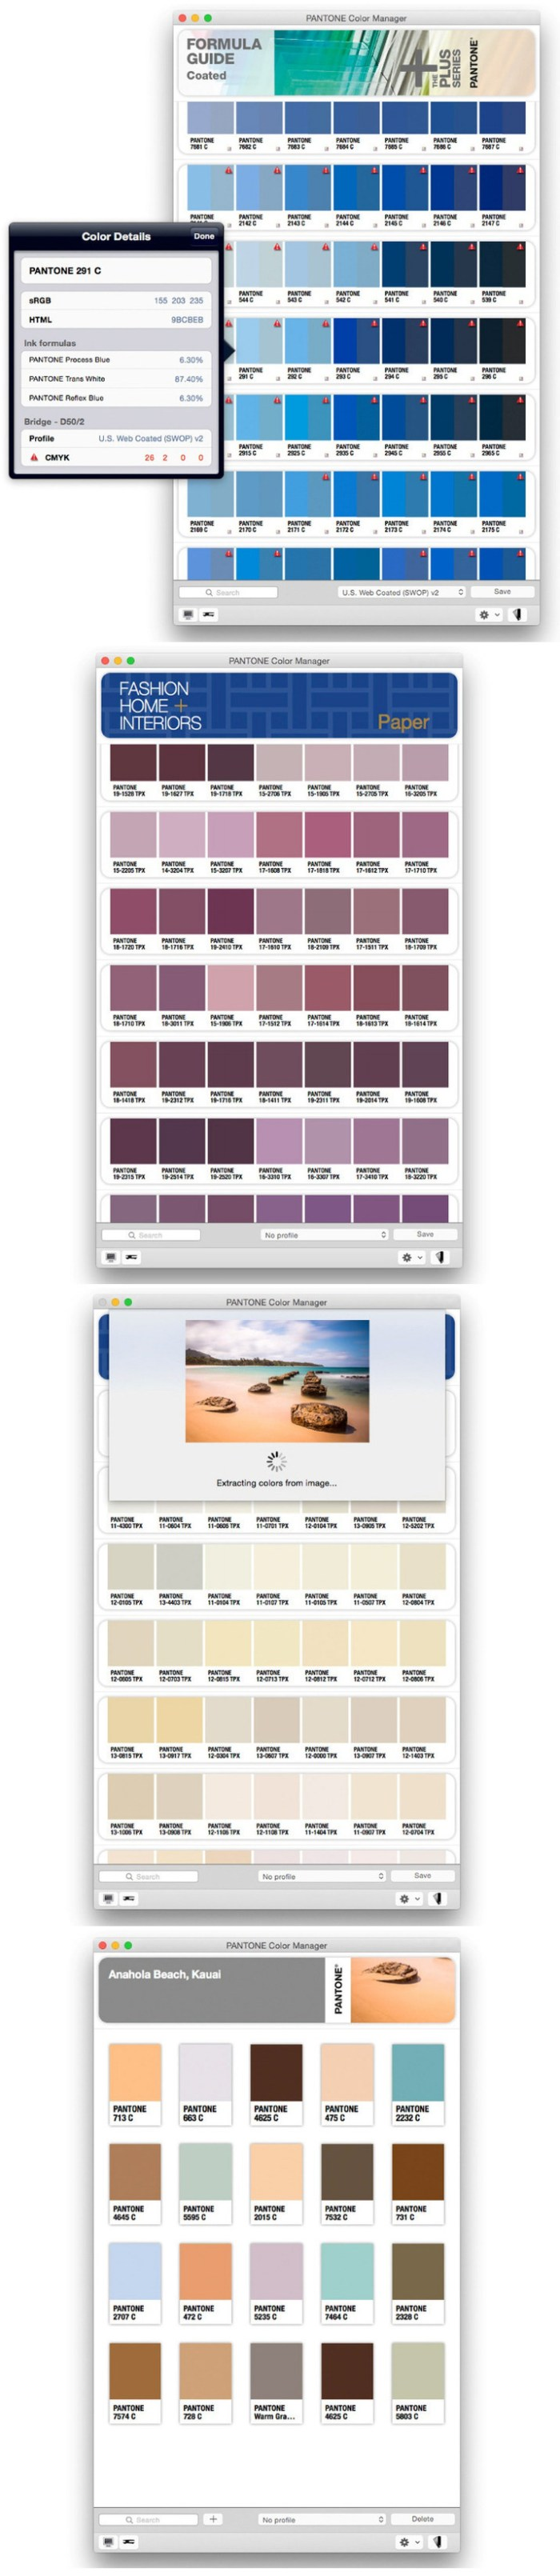 pantone_color_manager_210